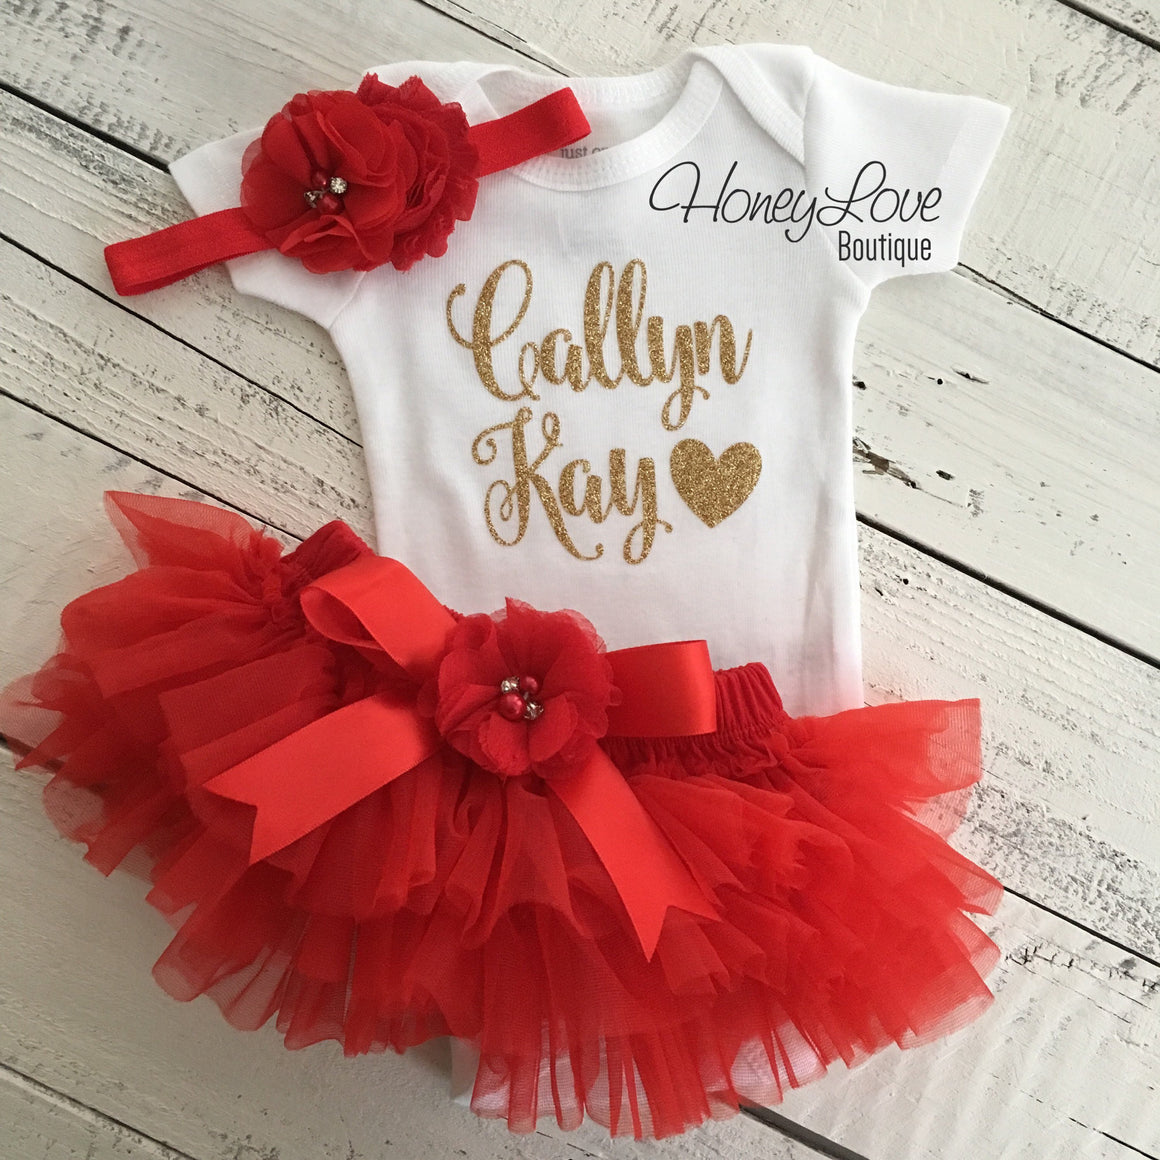 PERSONALIZED Name Outfit - Red and Gold Glitter - Red flower embellished tutu skirt bloomers - HoneyLoveBoutique